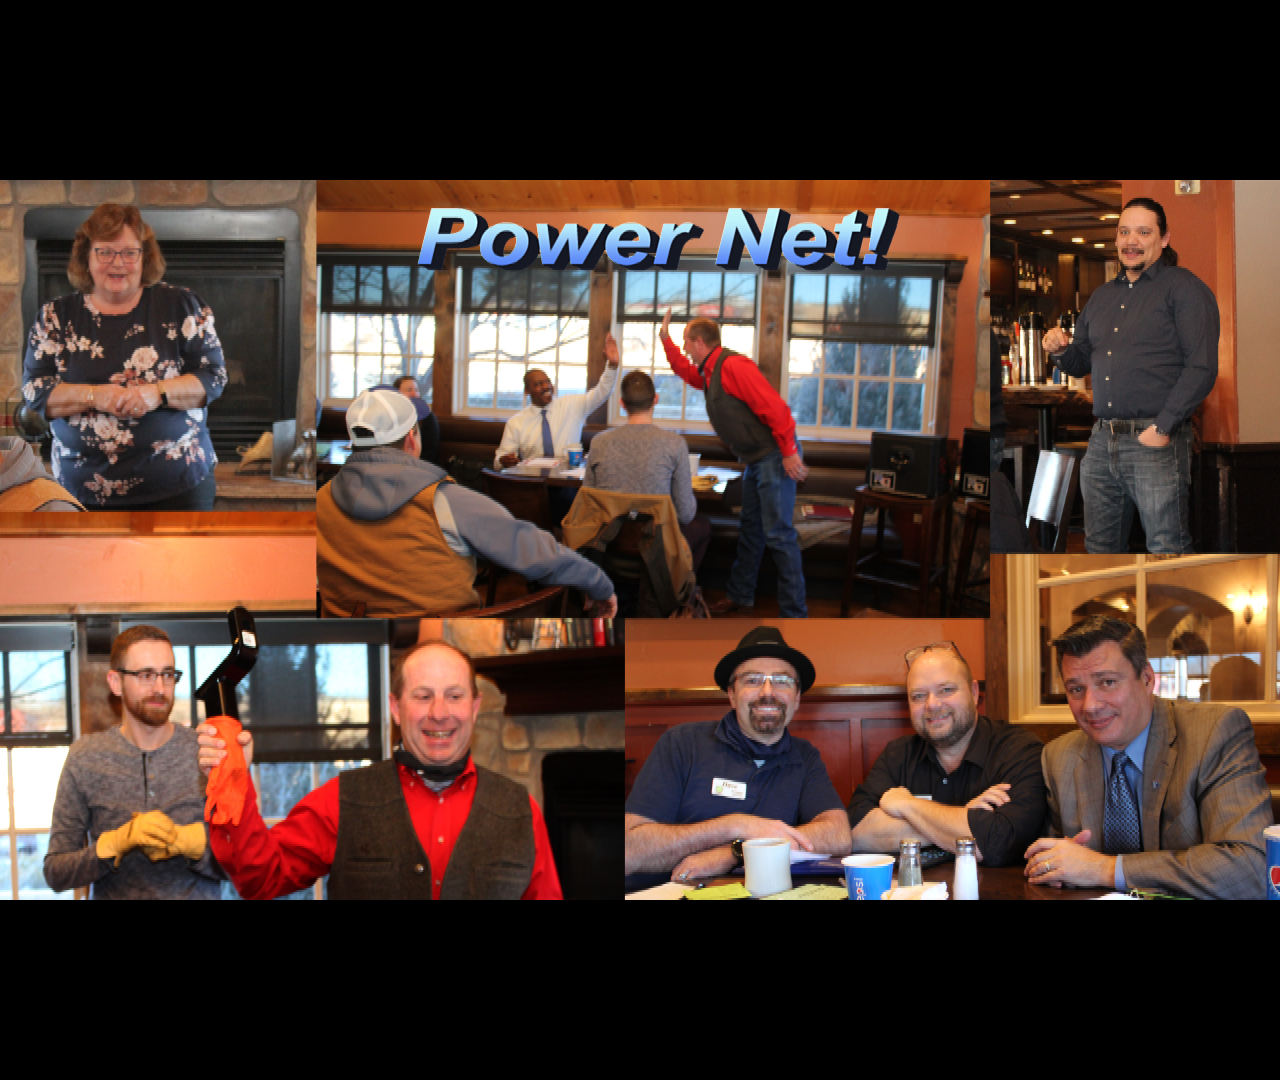 Power Net! - Business Networking - B Ver